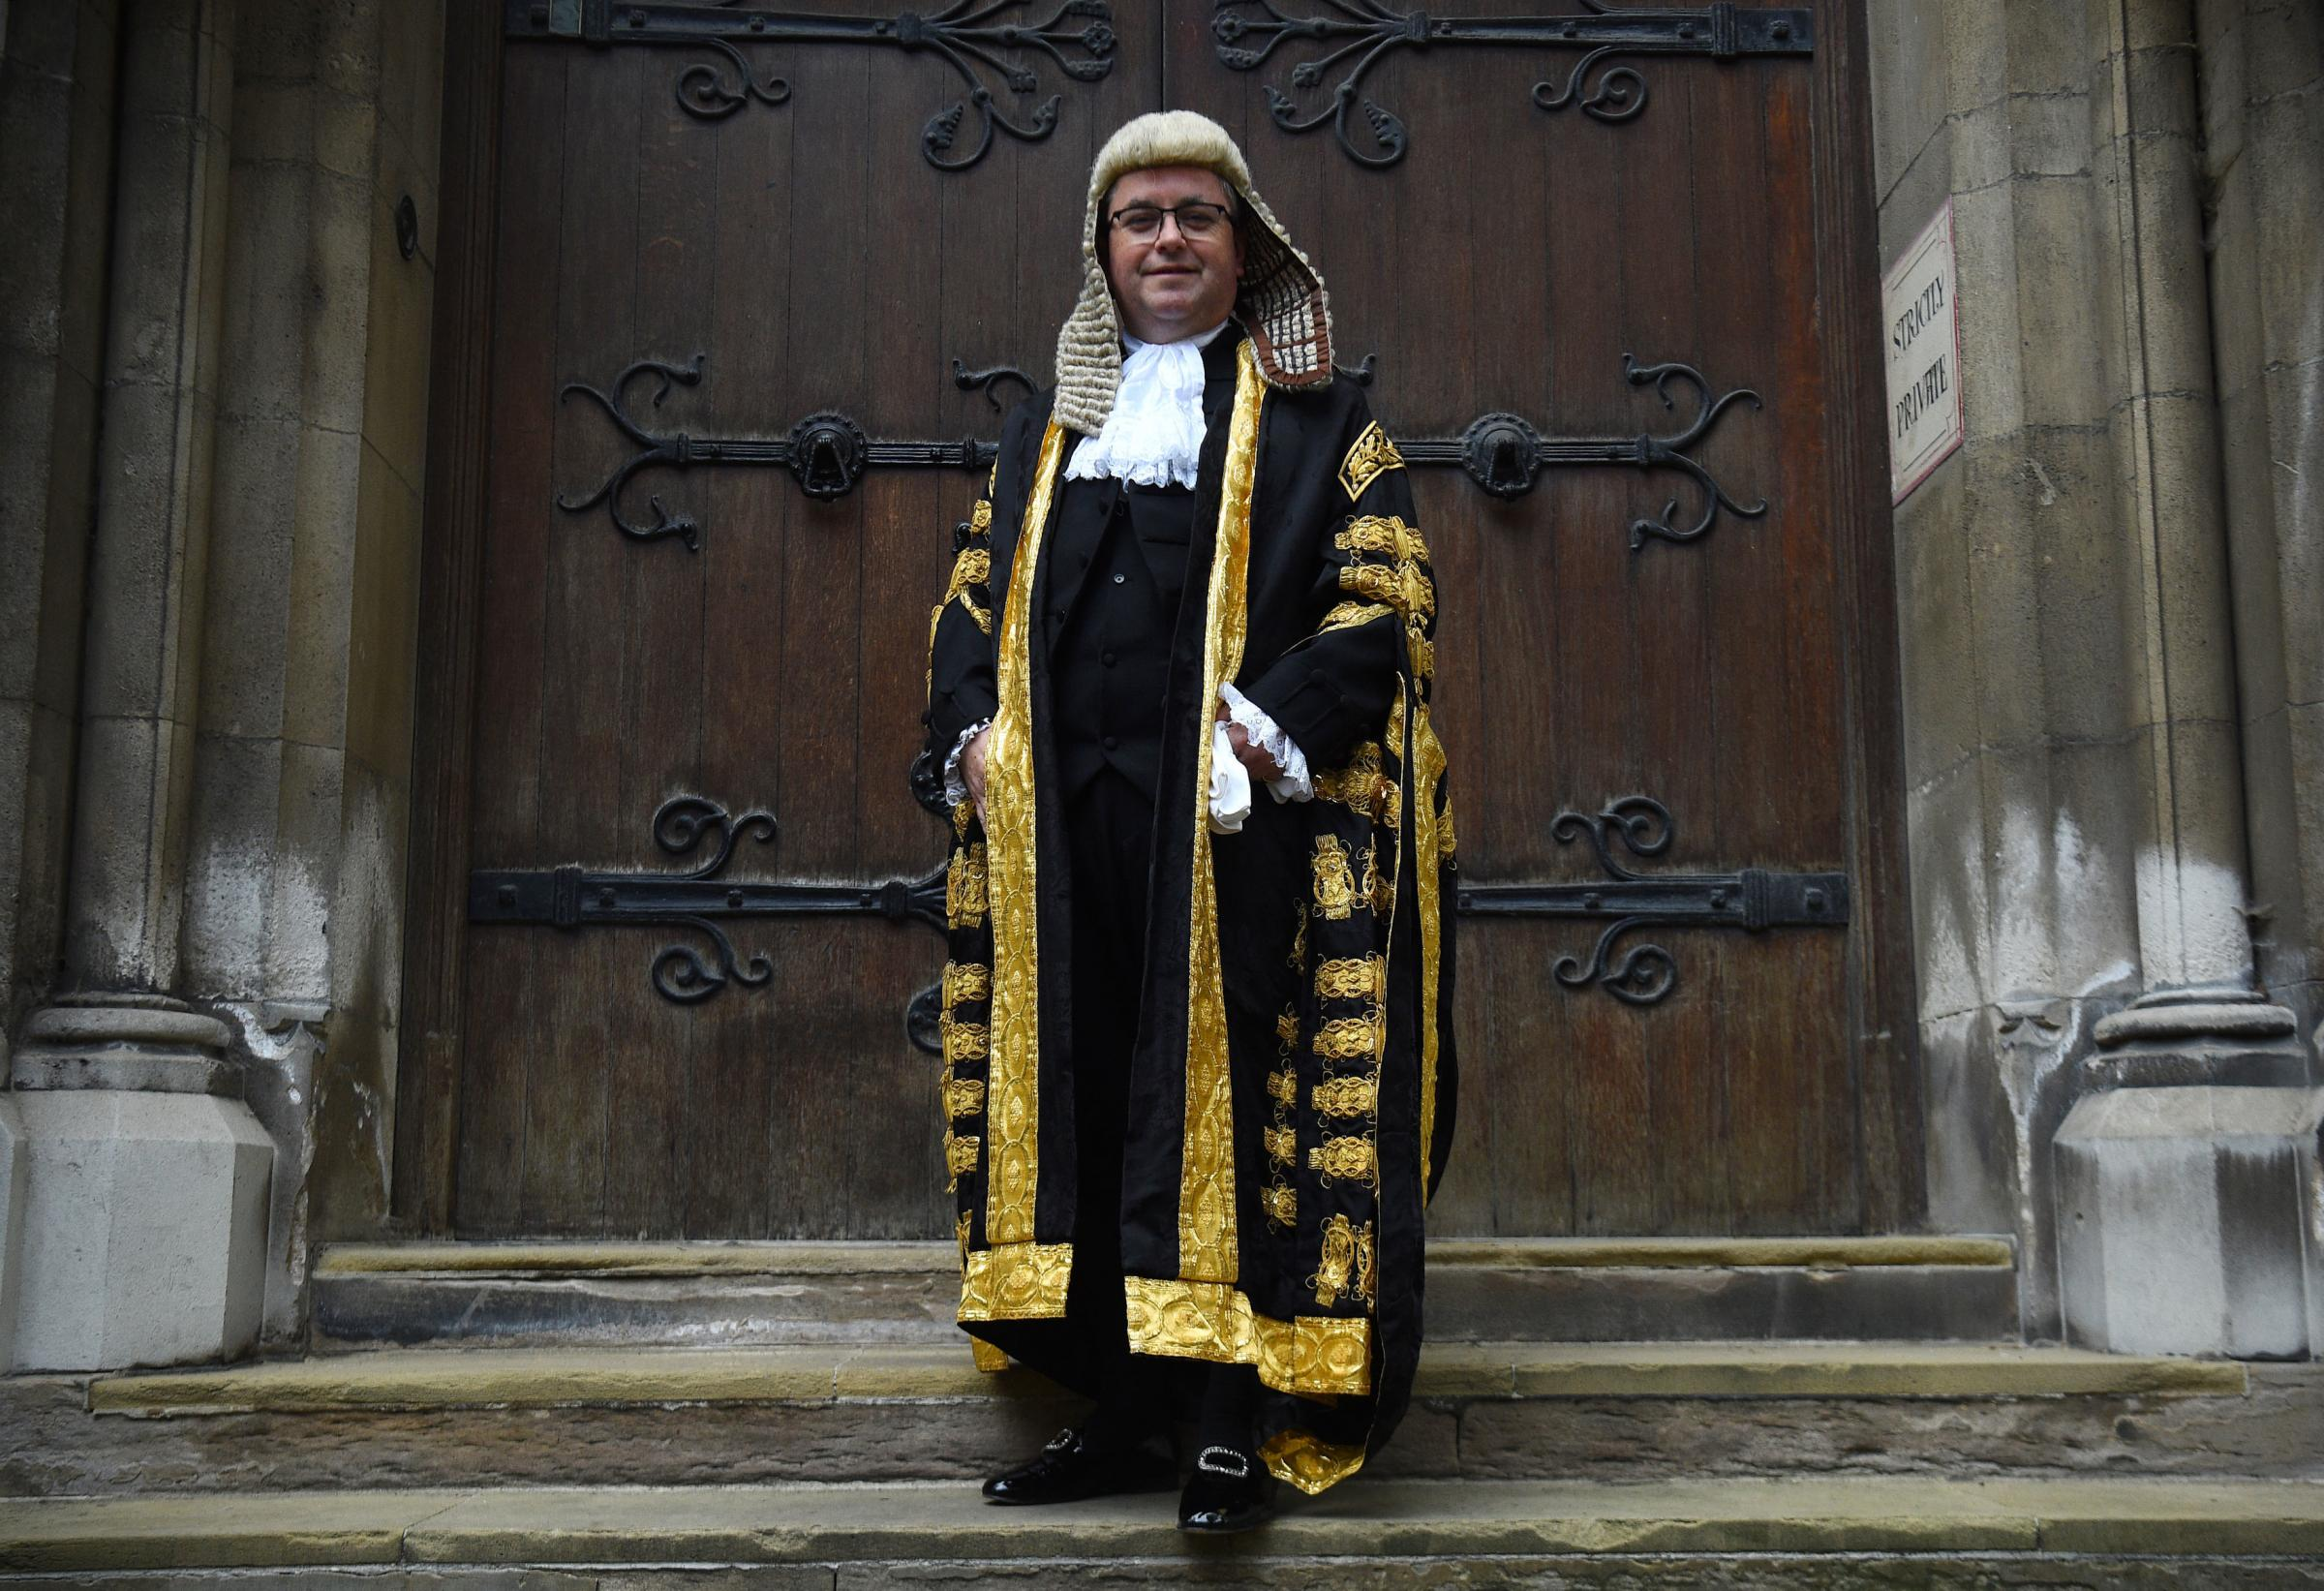 SPECIAL REPORT: Robert Buckland on prisons, courts, legal aid and the issues facing the justice system